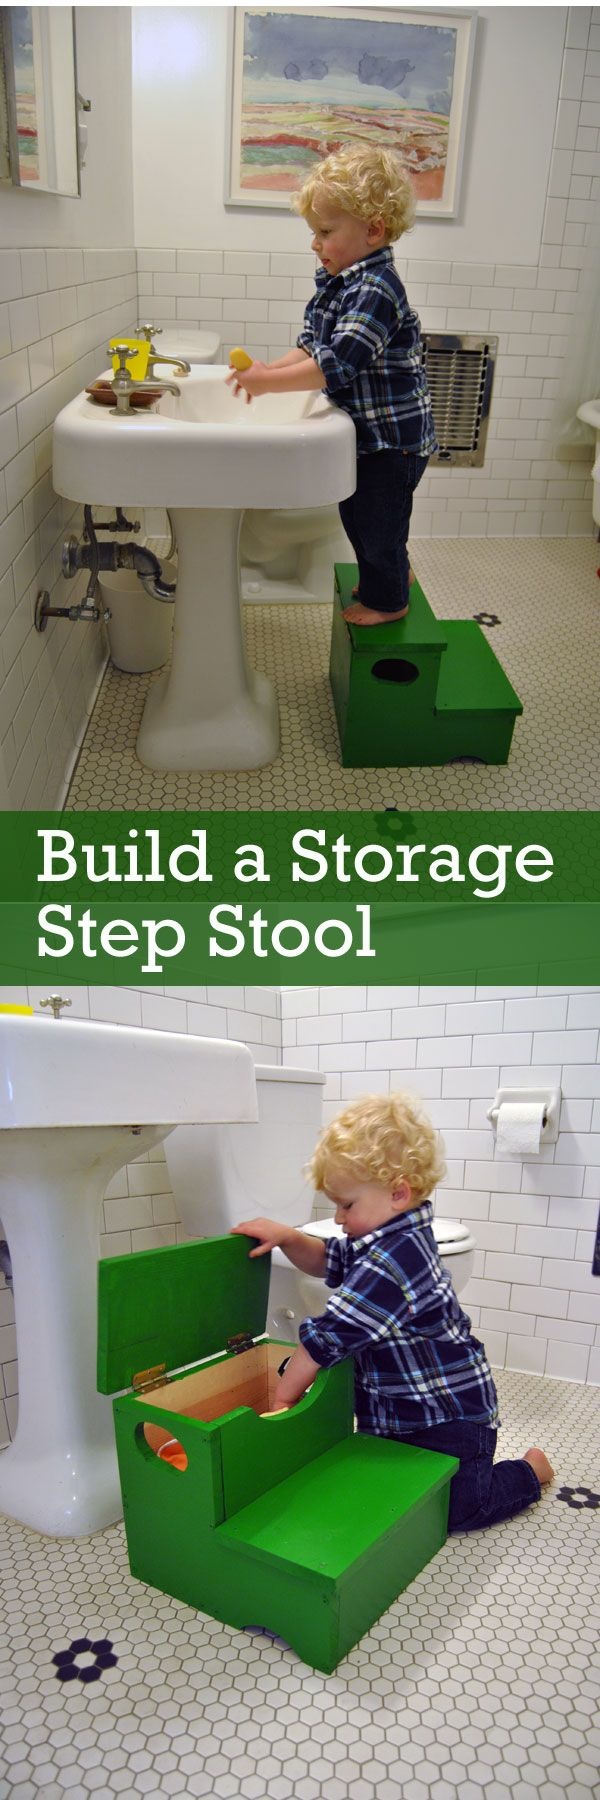 How to Build a Storage Step Stool - This would be a good thing to have for climbing on the trampoline, shoes could be stored inside so the dog doesn't get them.